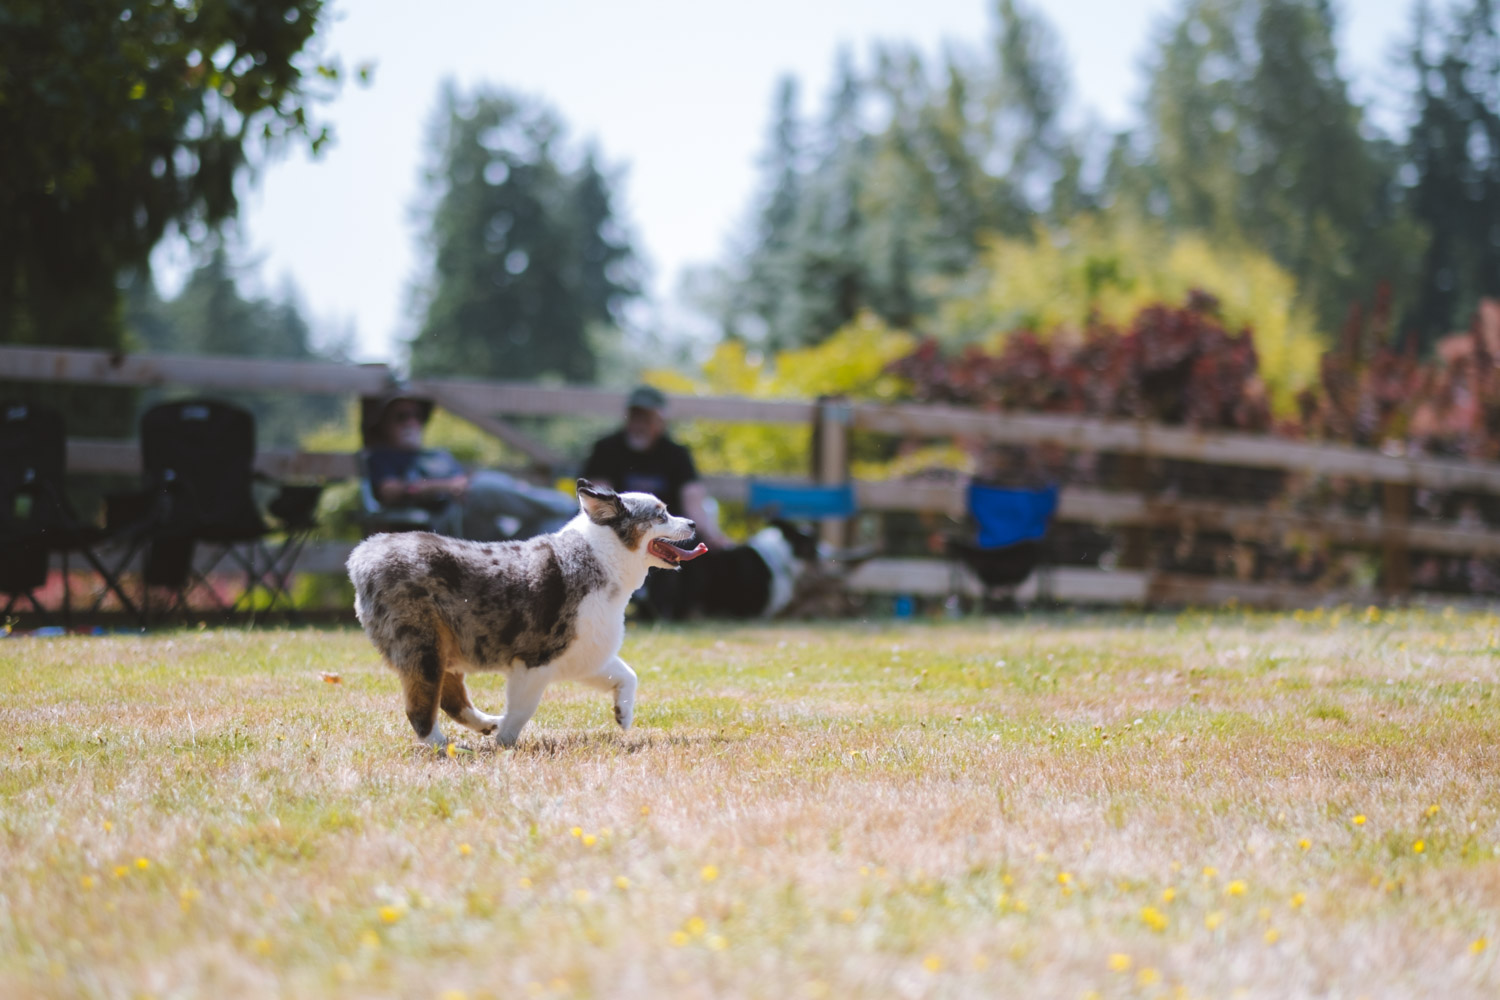 Owners and their corgis came out in droves to the 2019 Pacific Northwest Corgi Picnic in Woodinville, WA. Kathy and Leo Notenboom host the annual event at their home, which raises funds for CorgiAid, a not-for-profit corgi assistance organization. (Ryan McBoyle/ Seattle Refined)